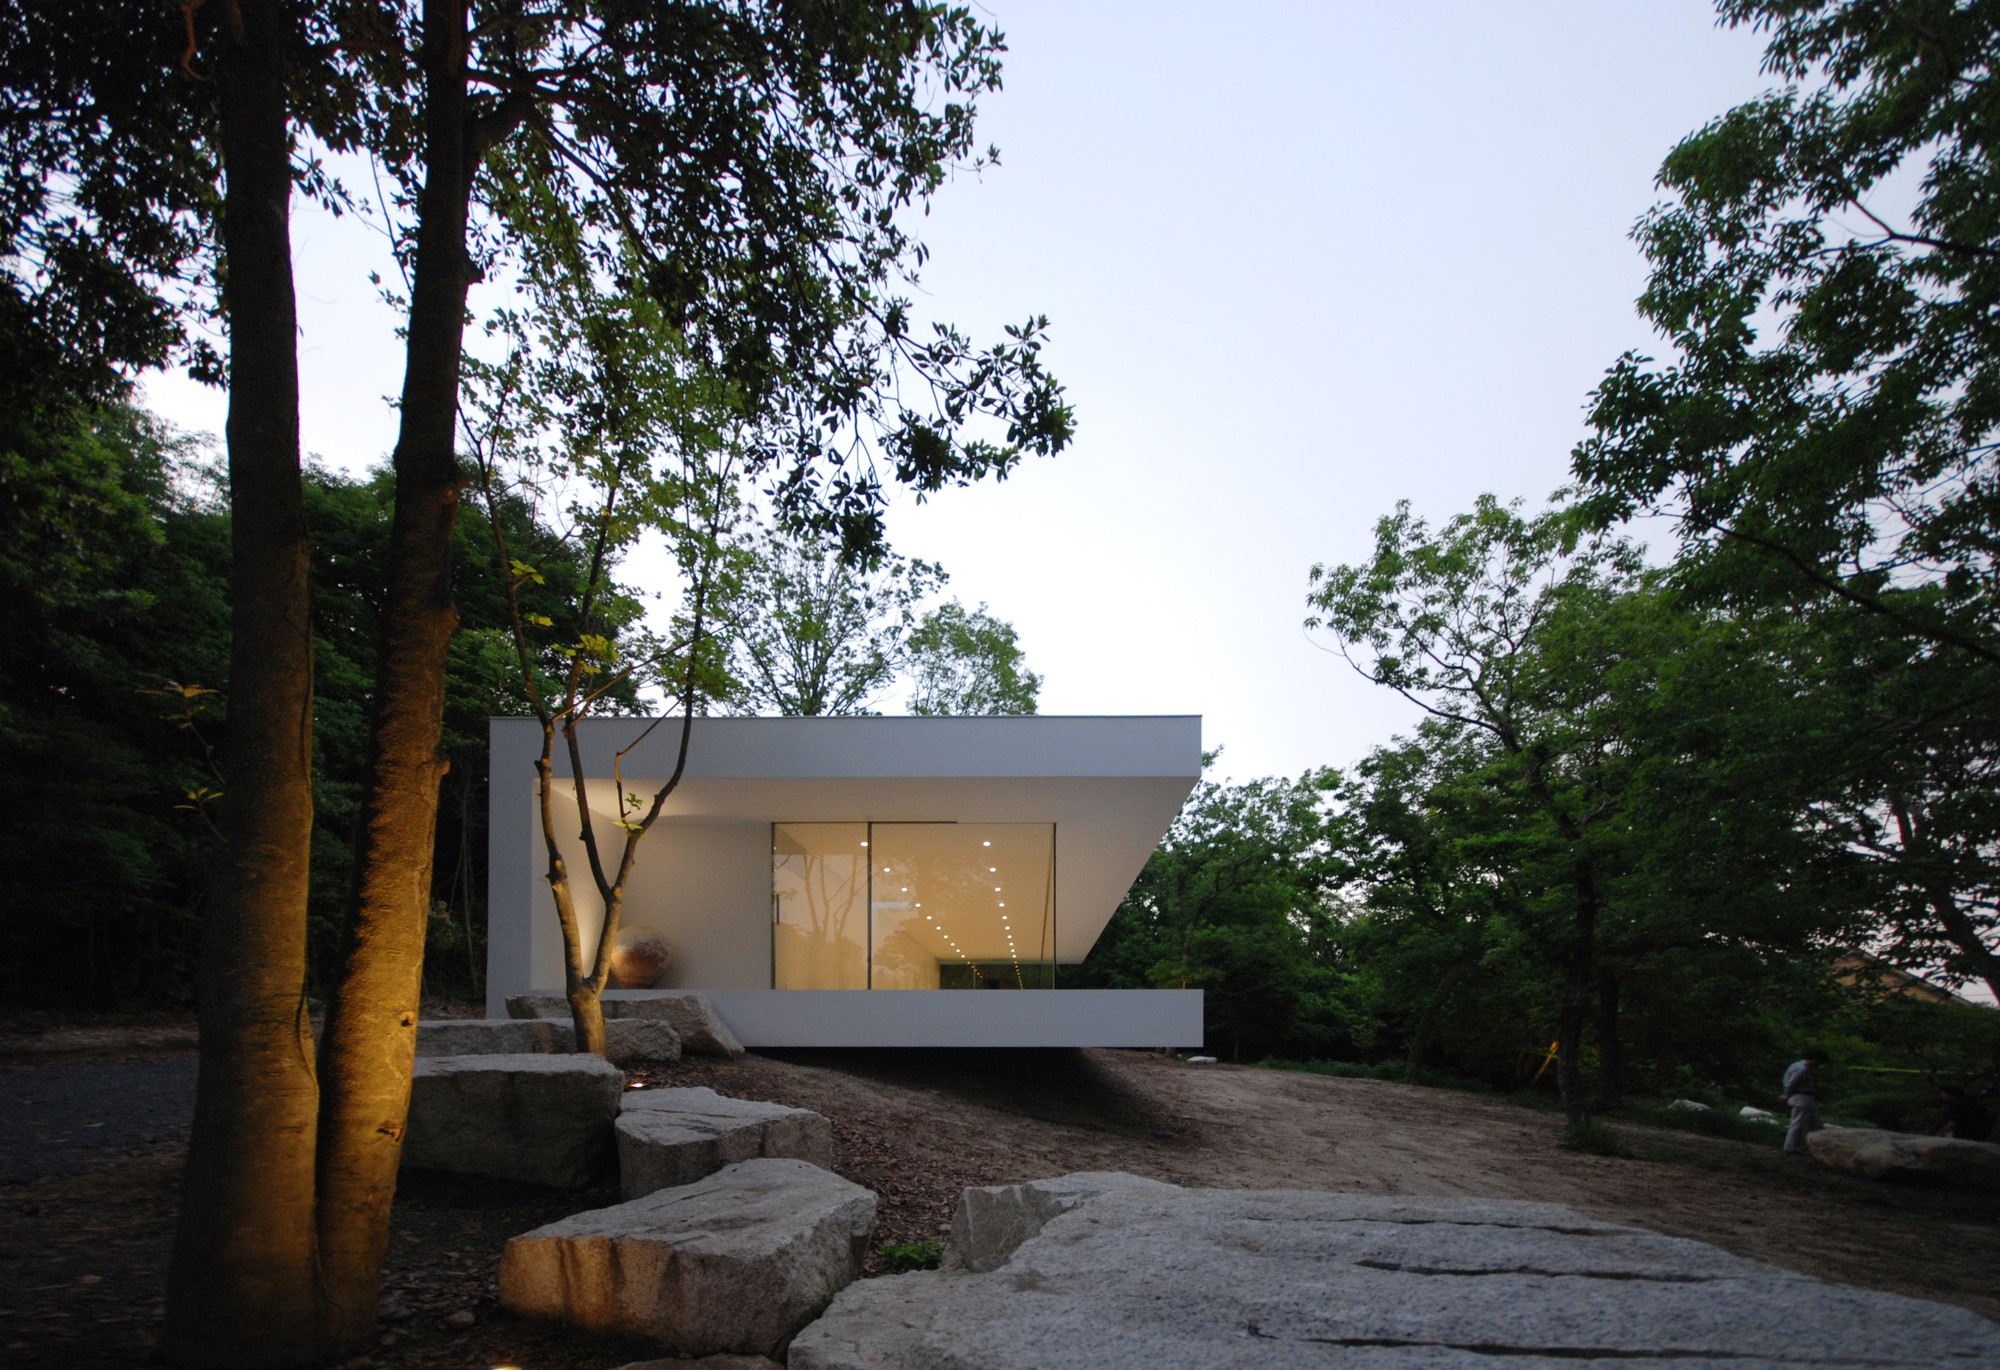 S Gallery & Residence / Shinichi Ogawa & Associates, Courtesy of Shinichi Ogawa & Associates